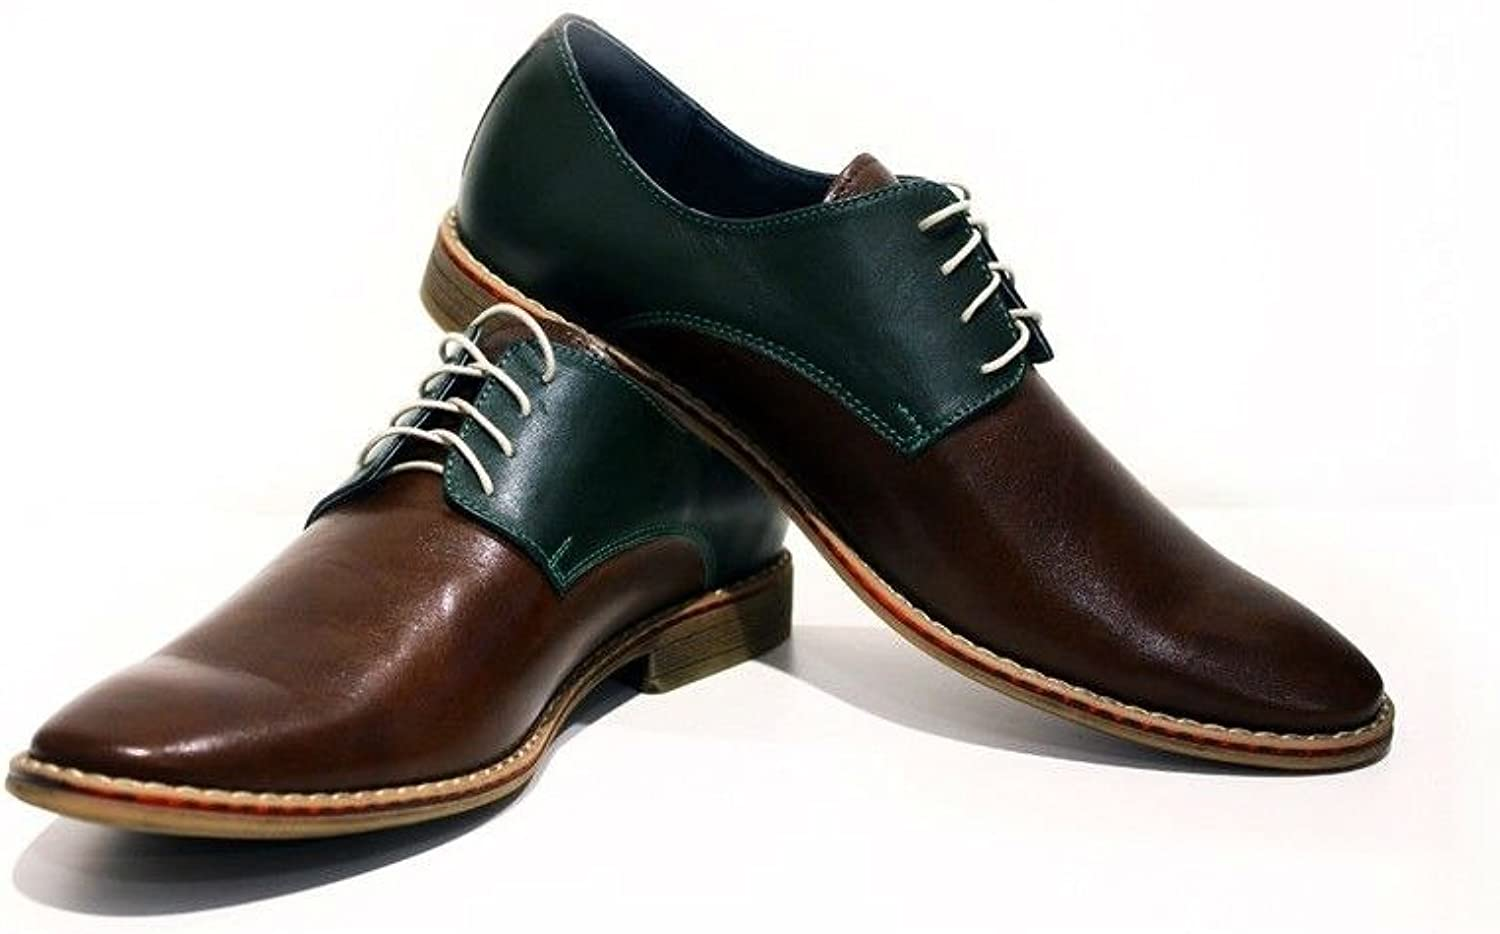 Modello Roma - Handmade Italian Leather Mens color Brown Oxfords Dress shoes - Cowhide Smooth Leather - Lace-Up